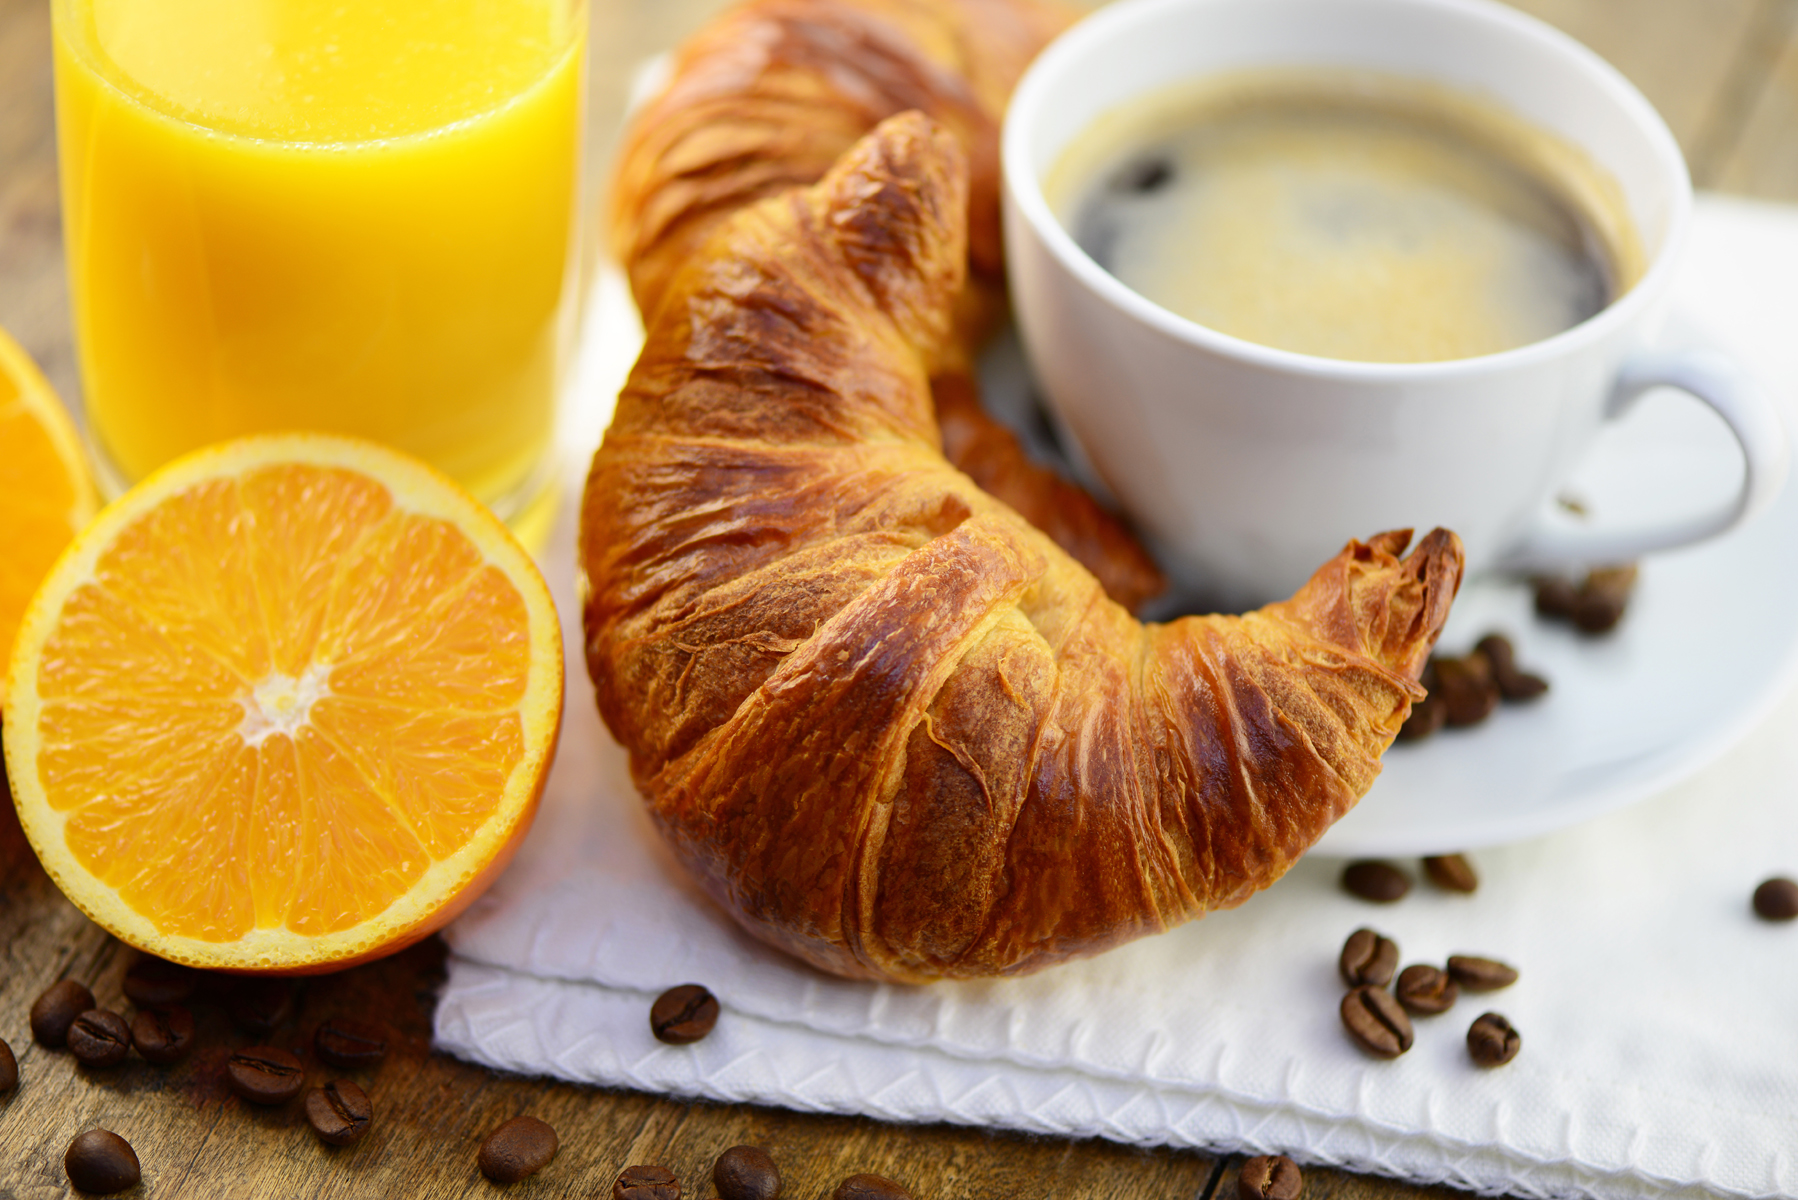 Best Western Plus Paris Vélizy express breakfast to go